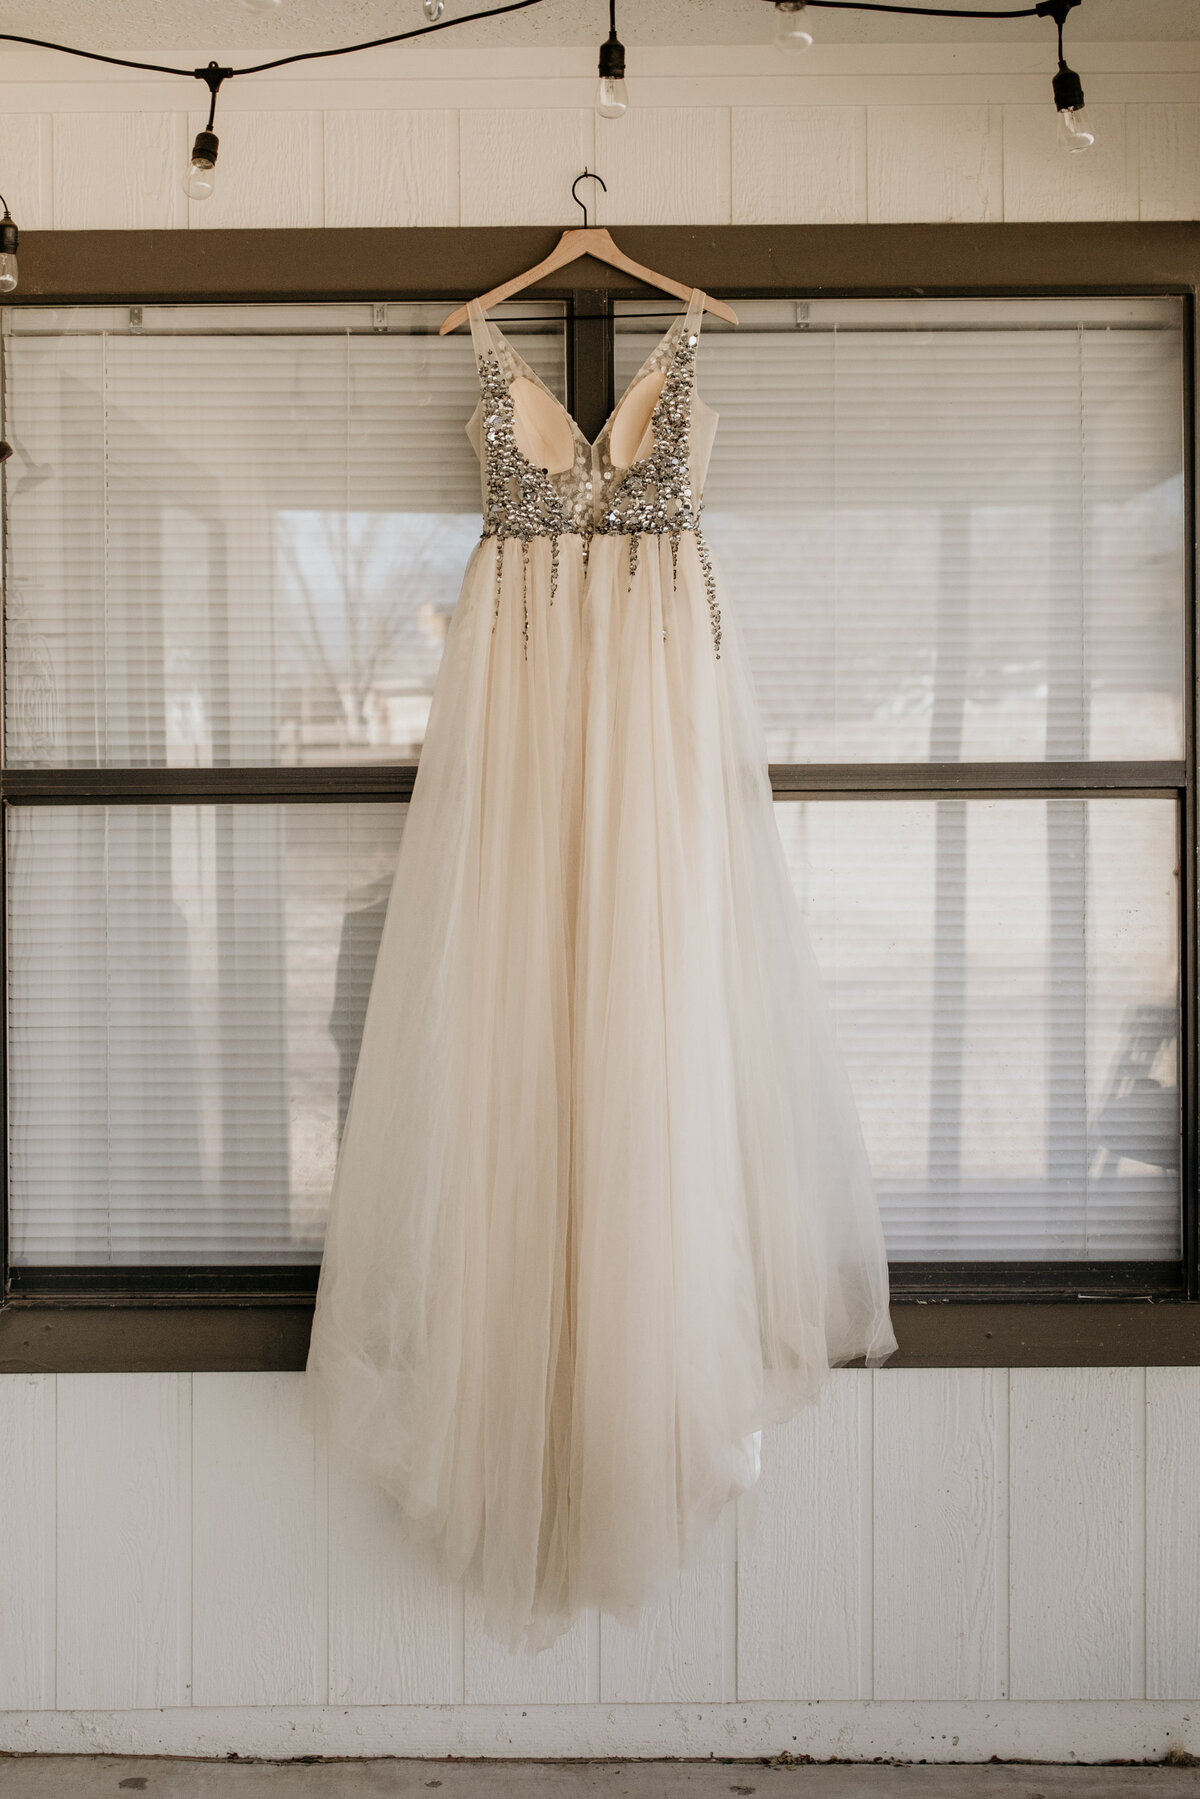 wedding-dress-rentals-for-styled-shoots-elopement-photographer-19-23